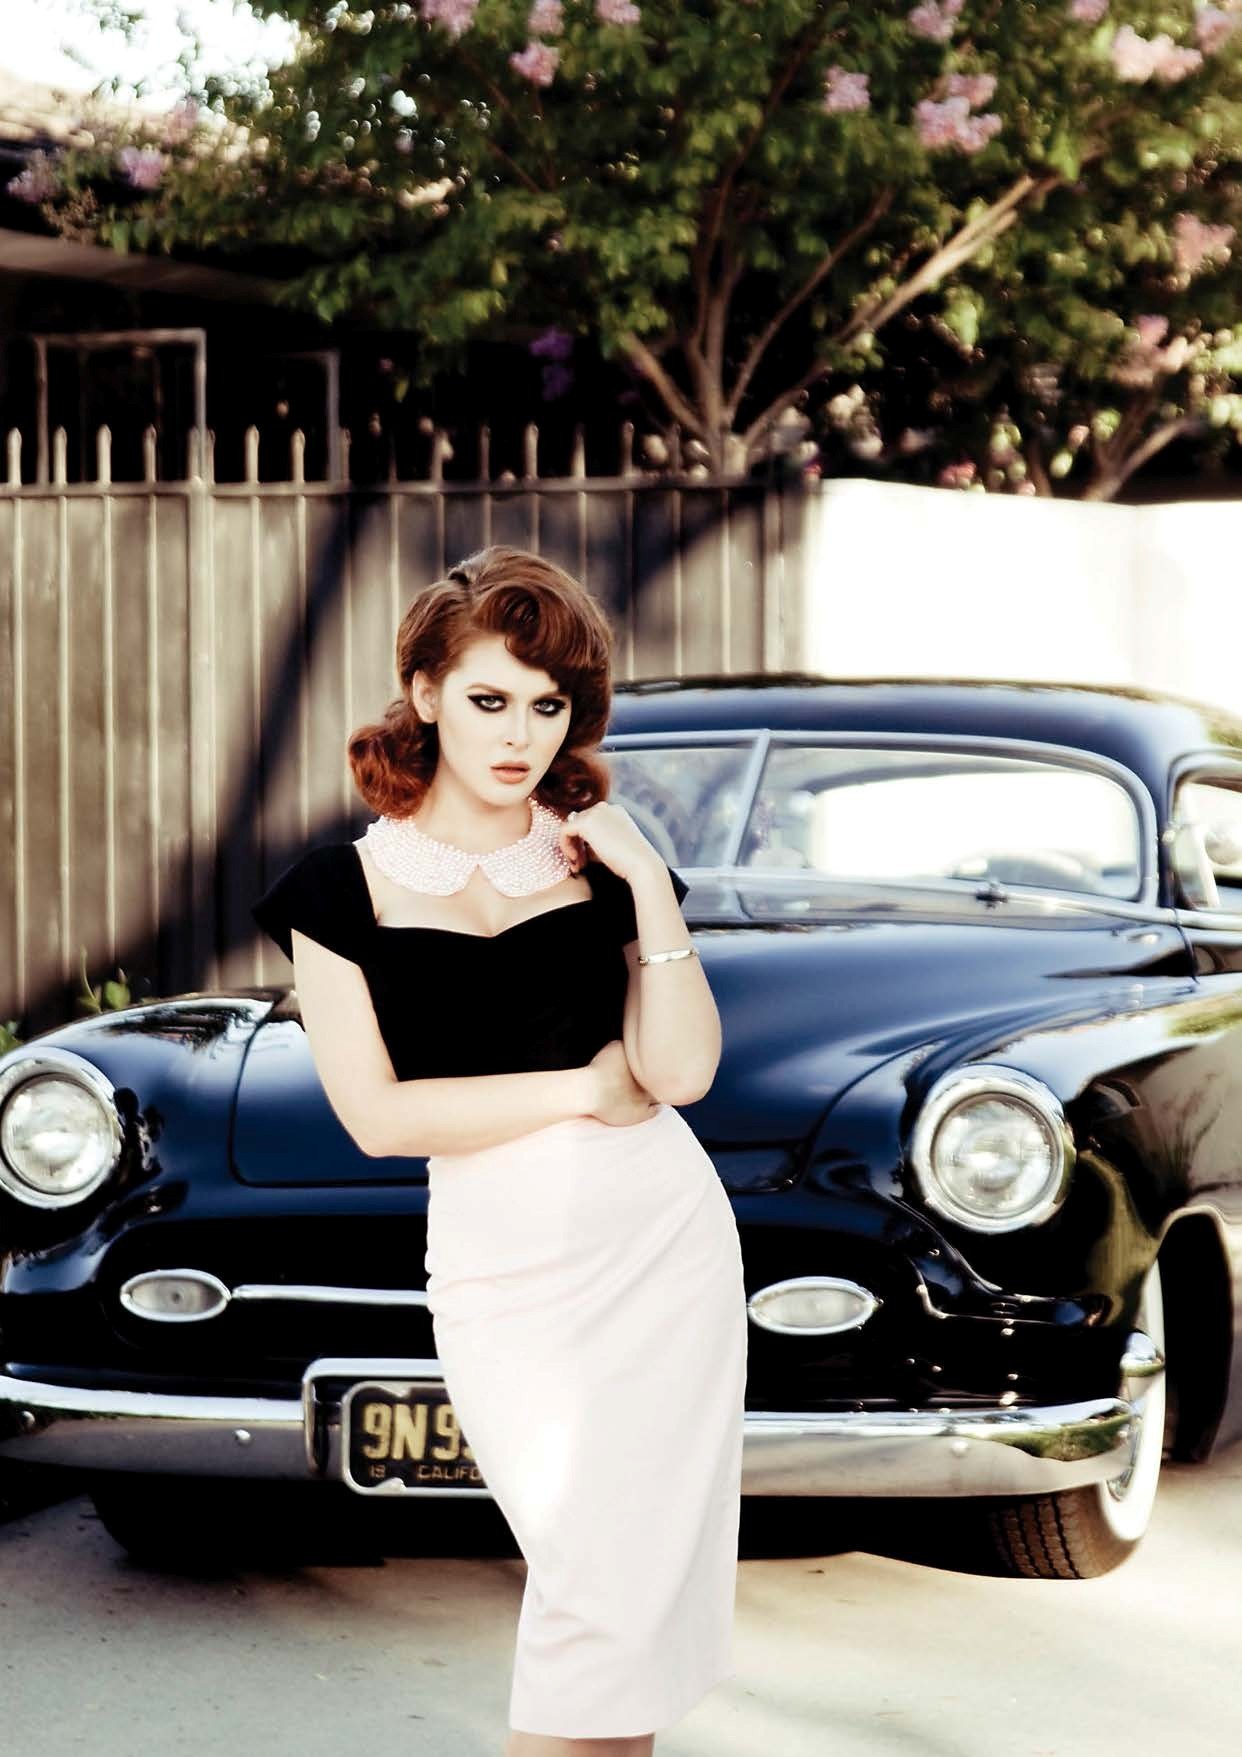 Girls Wallpaper Images Renee Olstead Is Gangsta Hot Next To A Chevy Deluxe